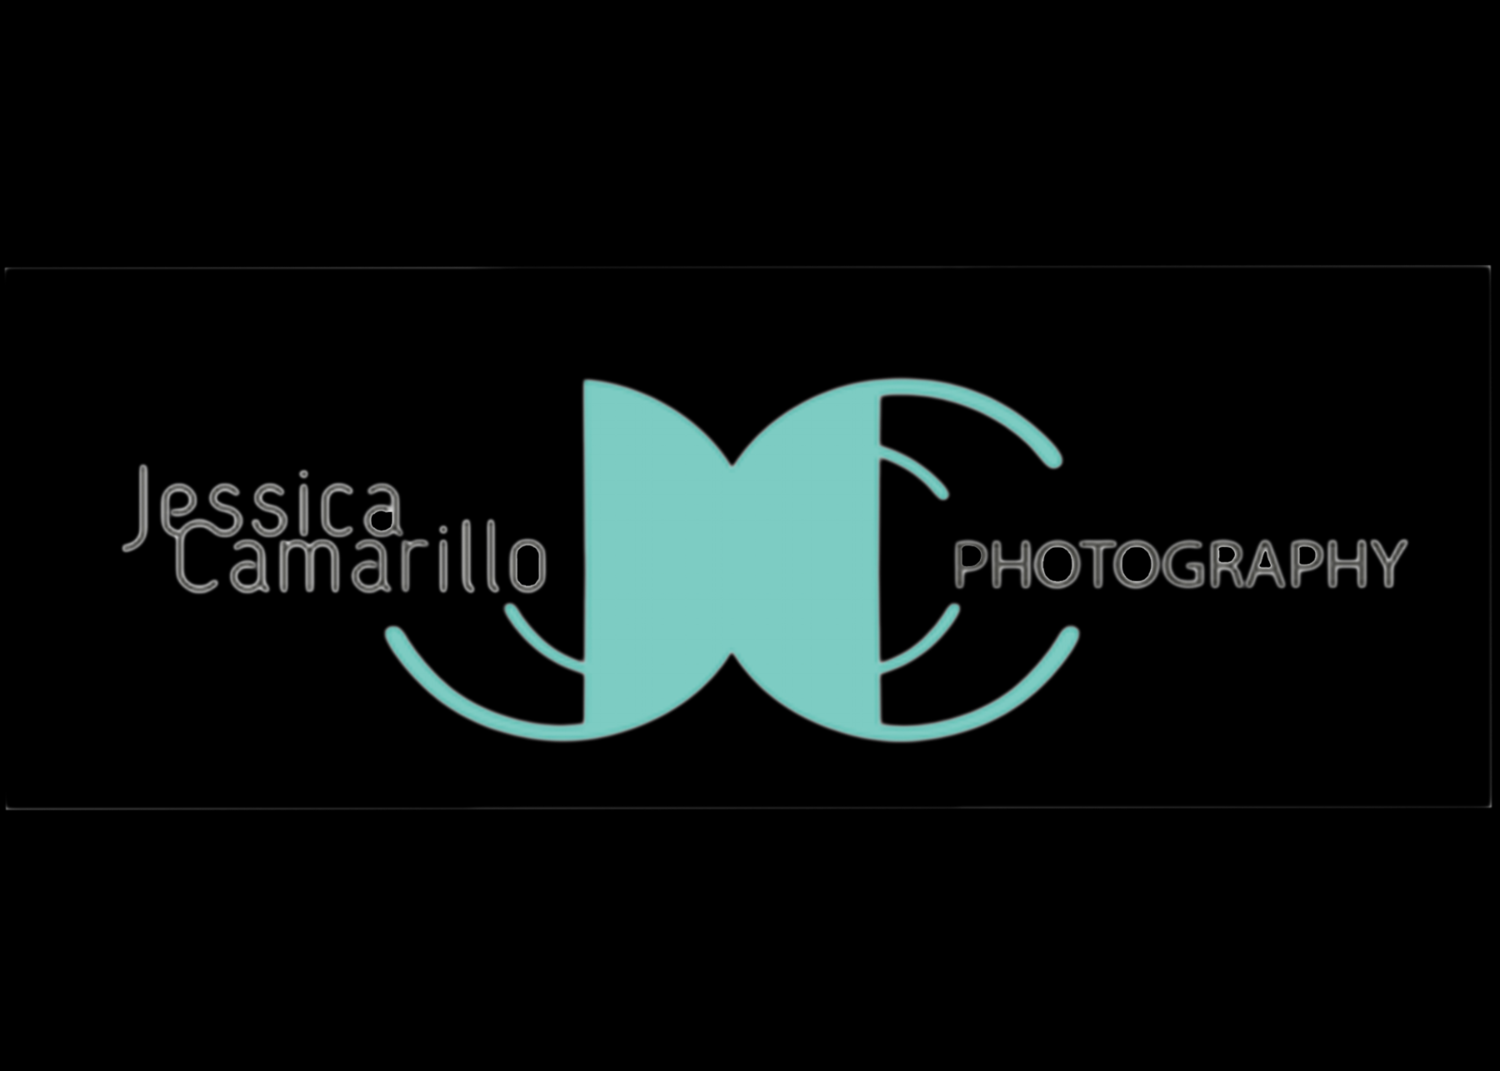 Jessica Camarillo Photography